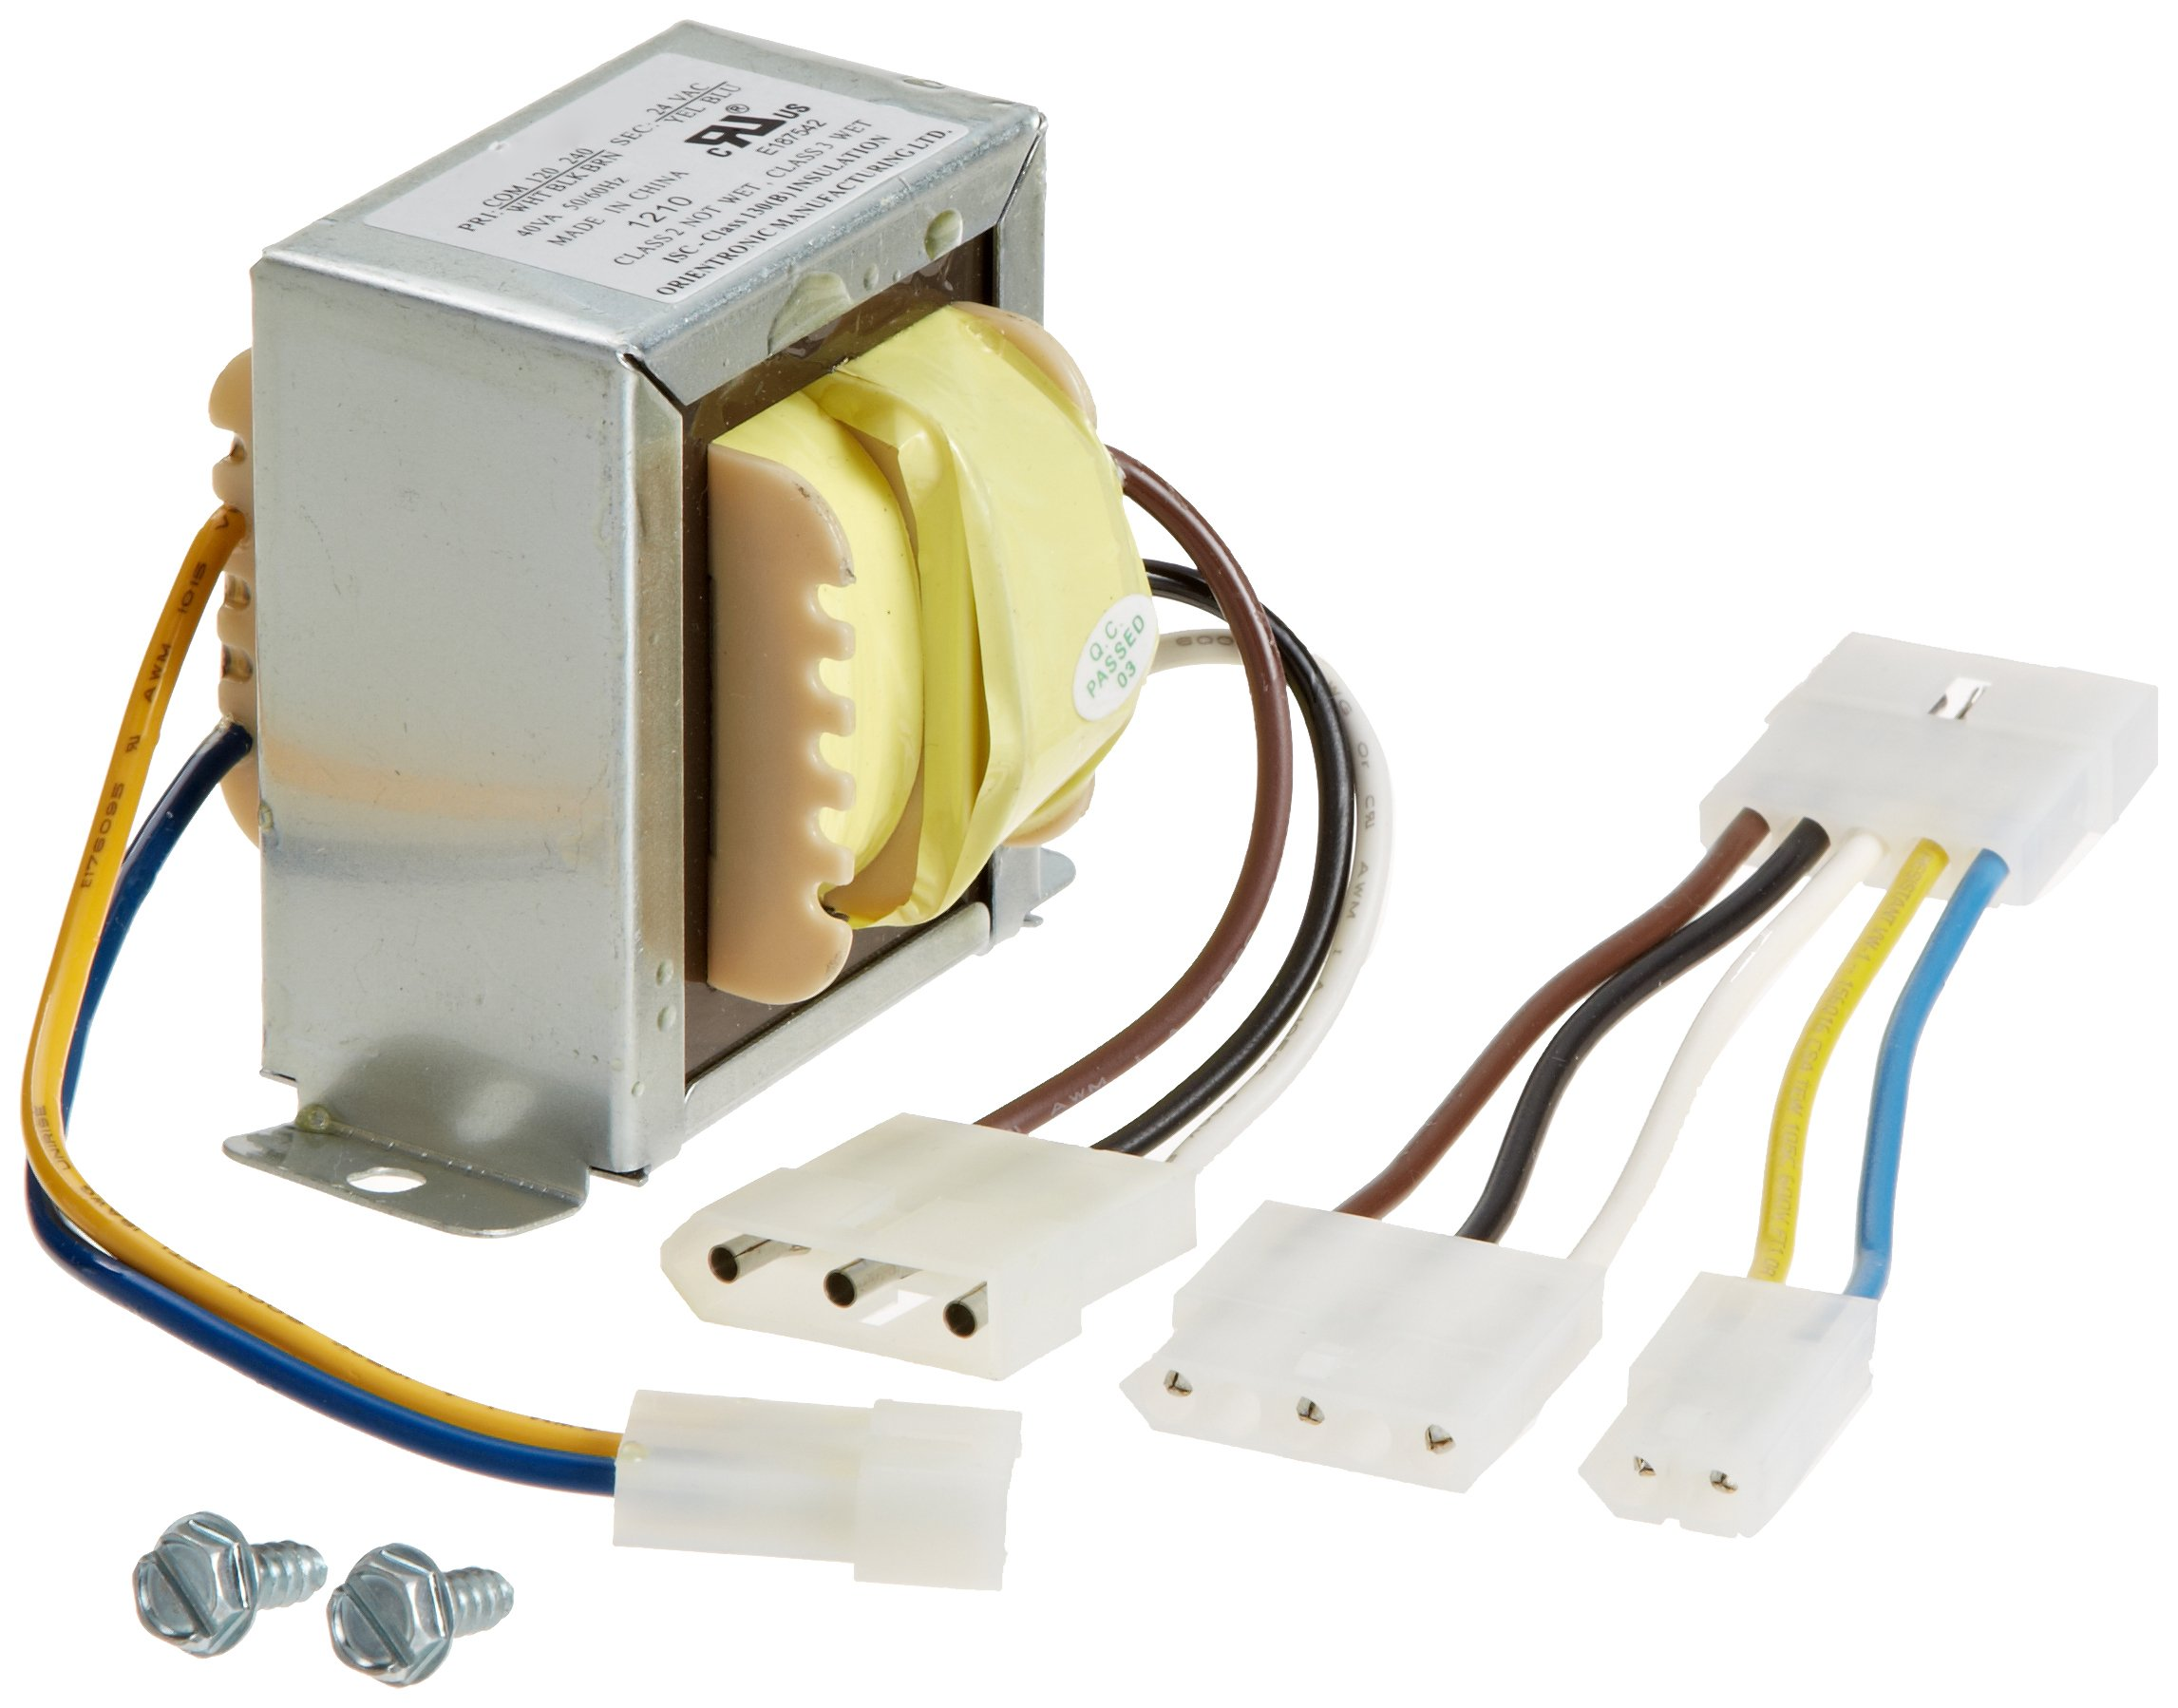 Pentair 42001-0107S 115/230-Volt Dual Voltage Transformer Kit Replacement Pool and Spa Heater Electrical Systems by Pentair